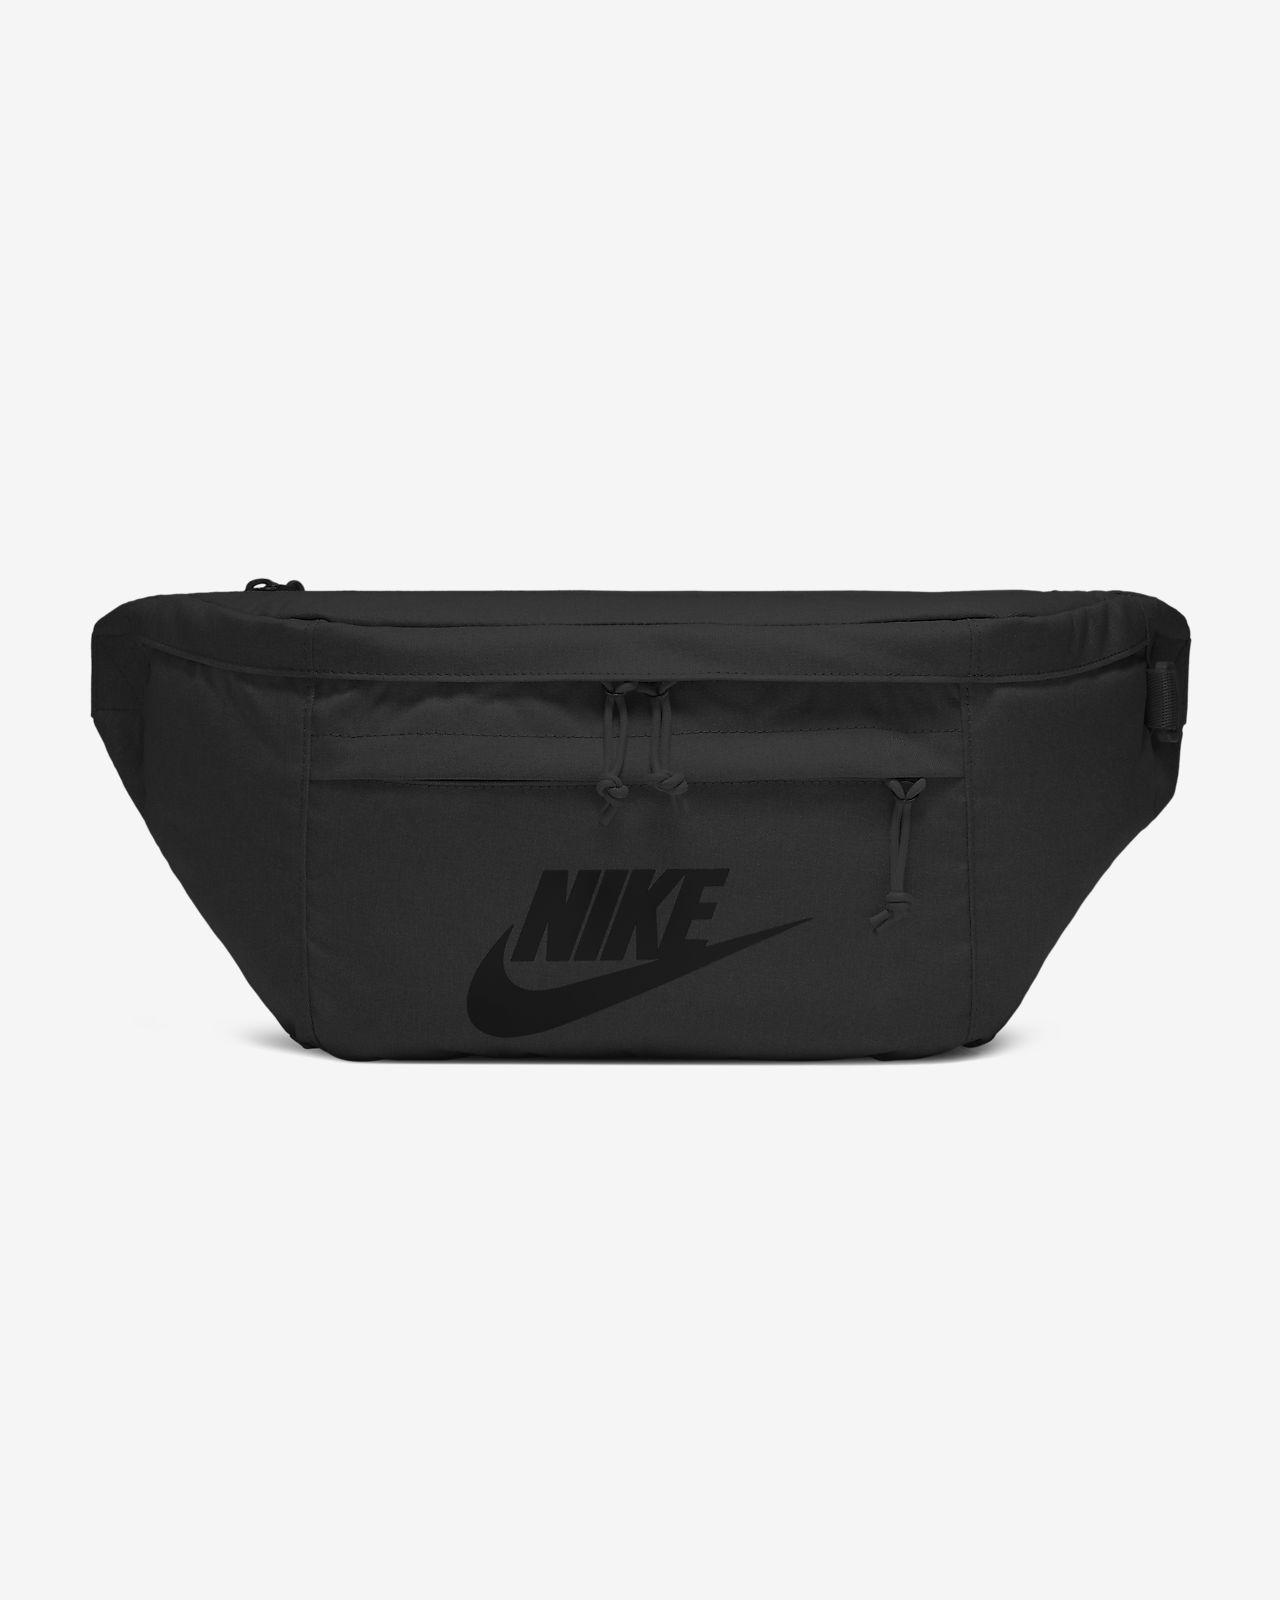 9808a9e879 Low Resolution Nike Tech Hip Pack Nike Tech Hip Pack